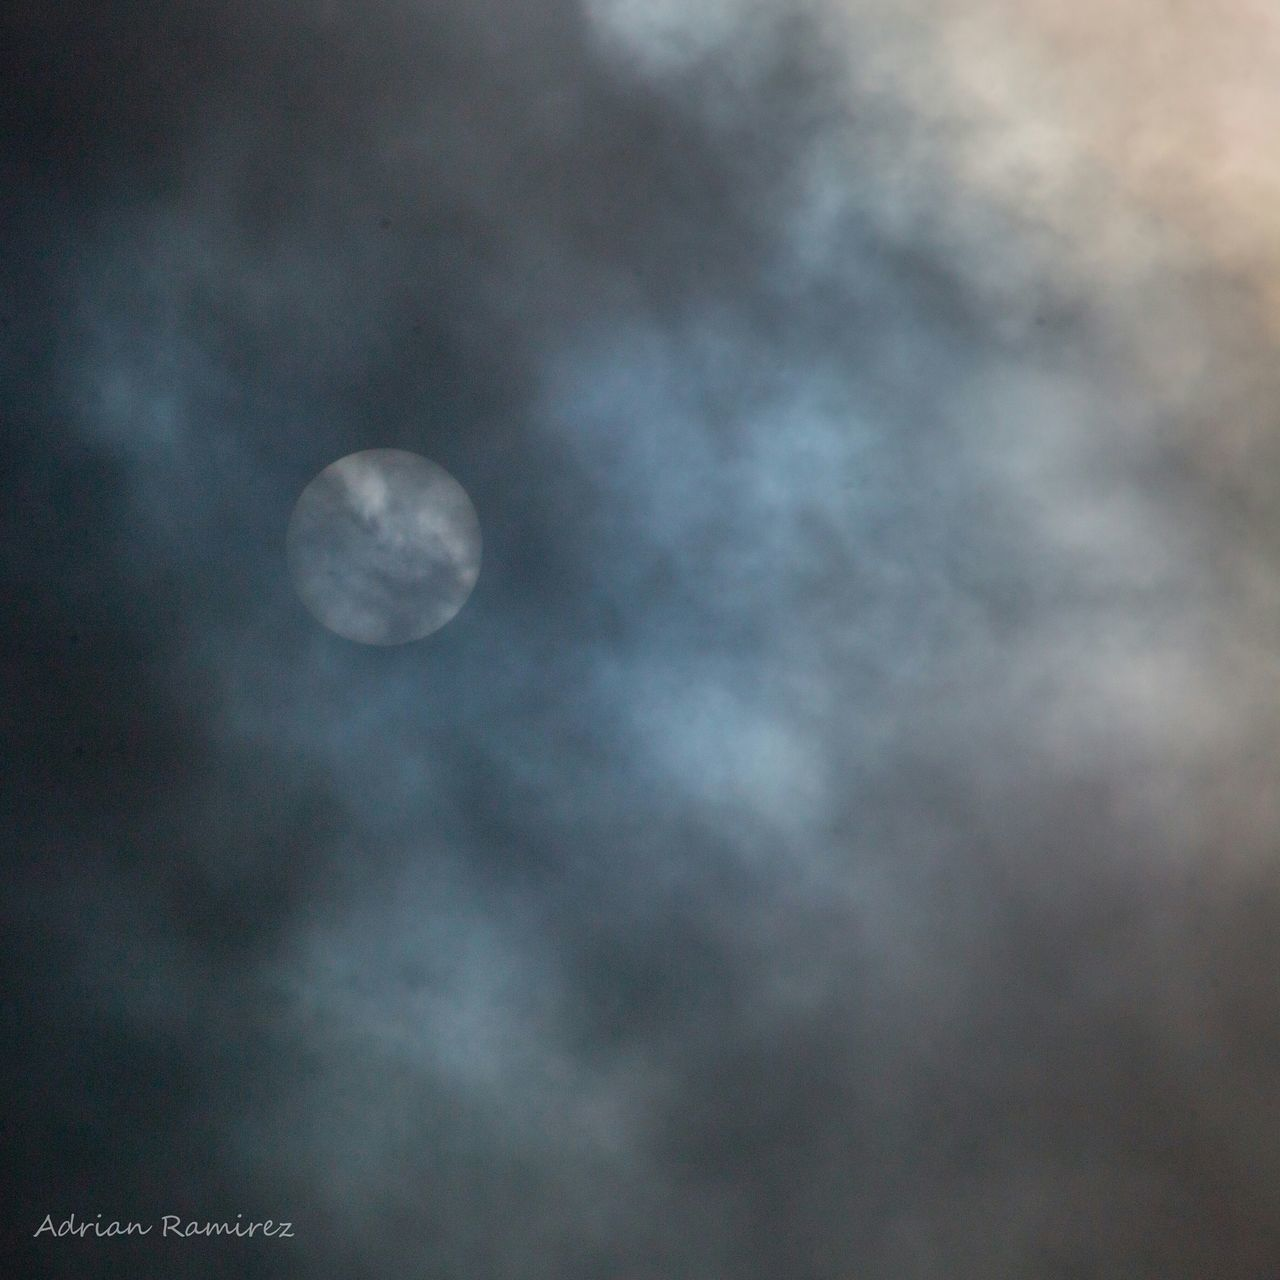 moon, sky, cloud - sky, low angle view, astronomy, nature, beauty in nature, planetary moon, scenics, tranquility, outdoors, moon surface, no people, space exploration, sky only, night, space